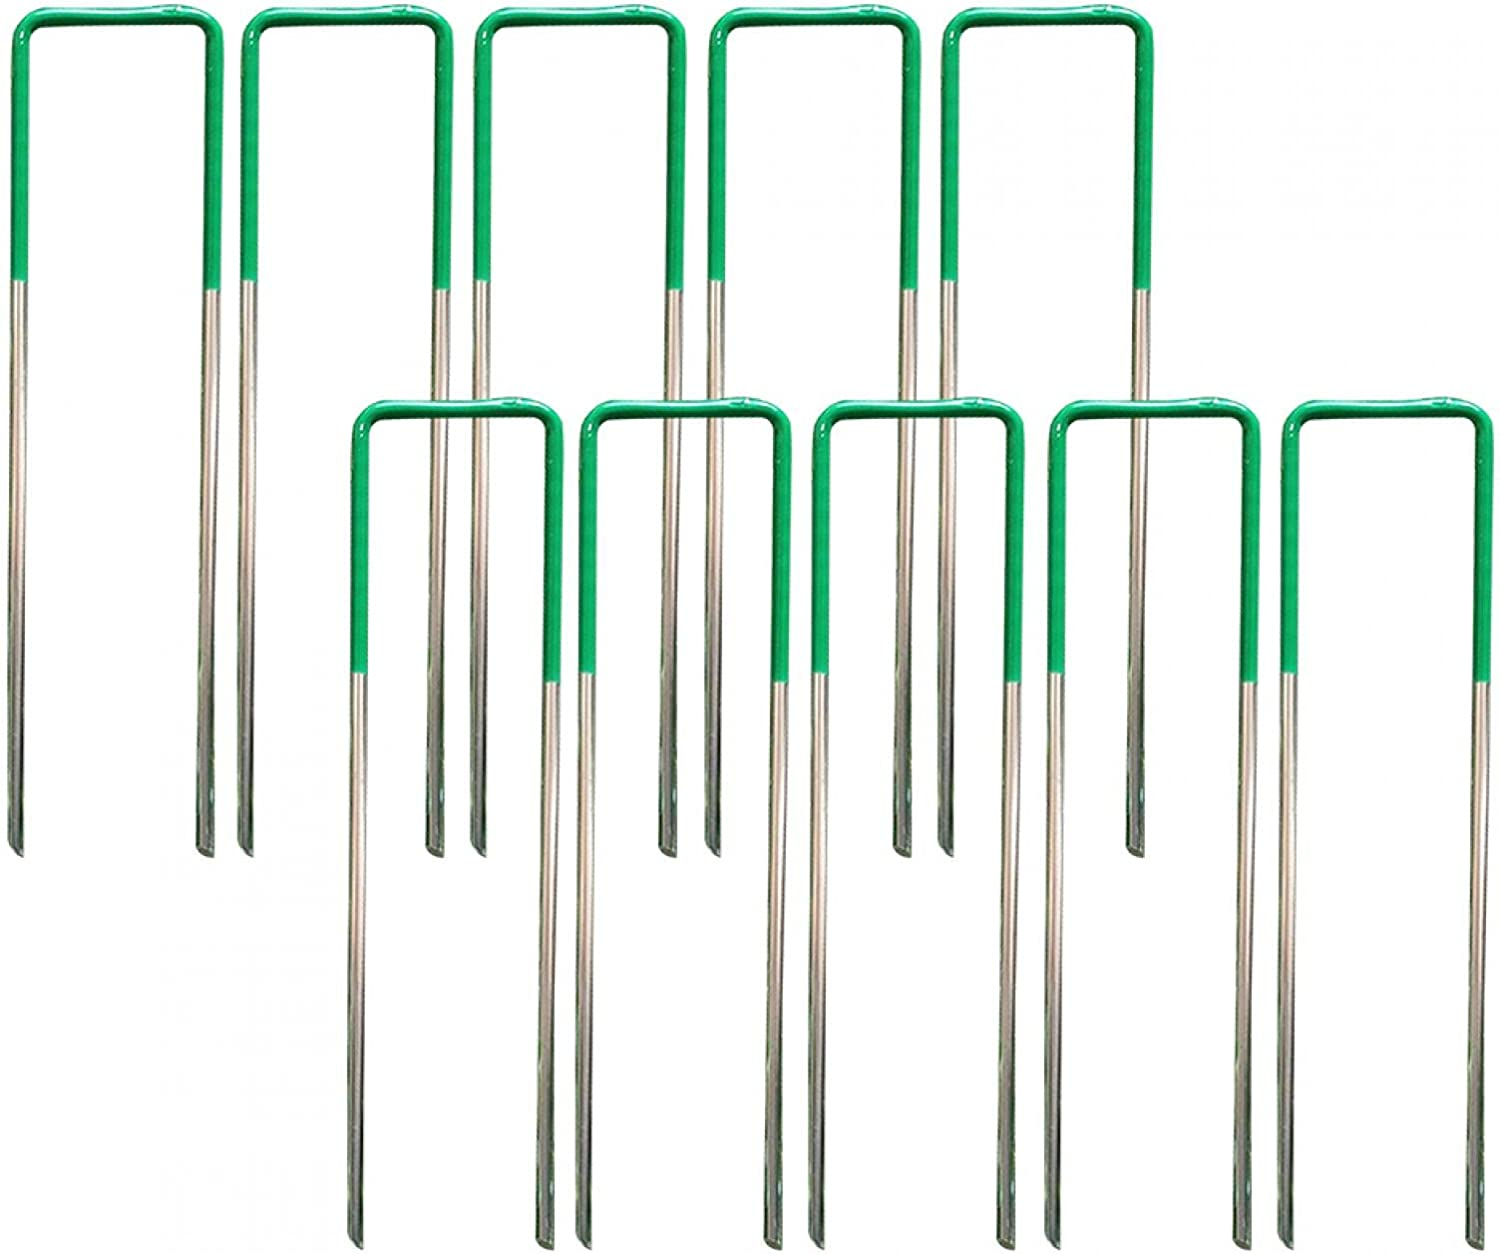 Garden Turf Max 43% OFF Pins 10pcs Durable Reusable Fixed Pene 100% quality warranty Ends Bevelled